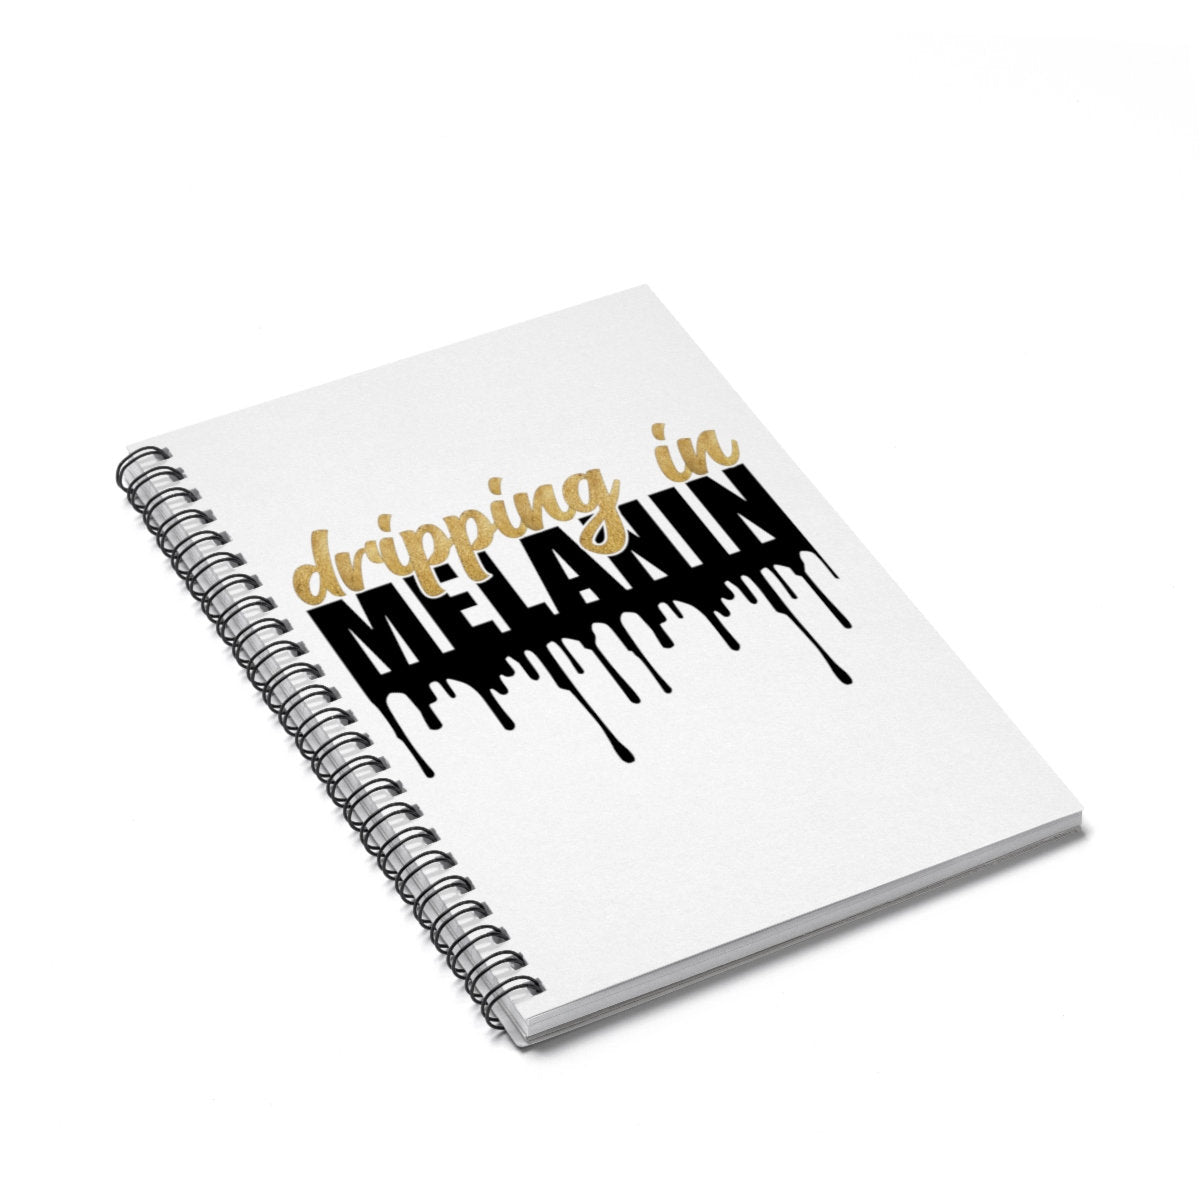 Dripping in Melanin Ethnic Spiral Notebook - Ruled Line African American, Black,  Back to School, Stationery, Home office